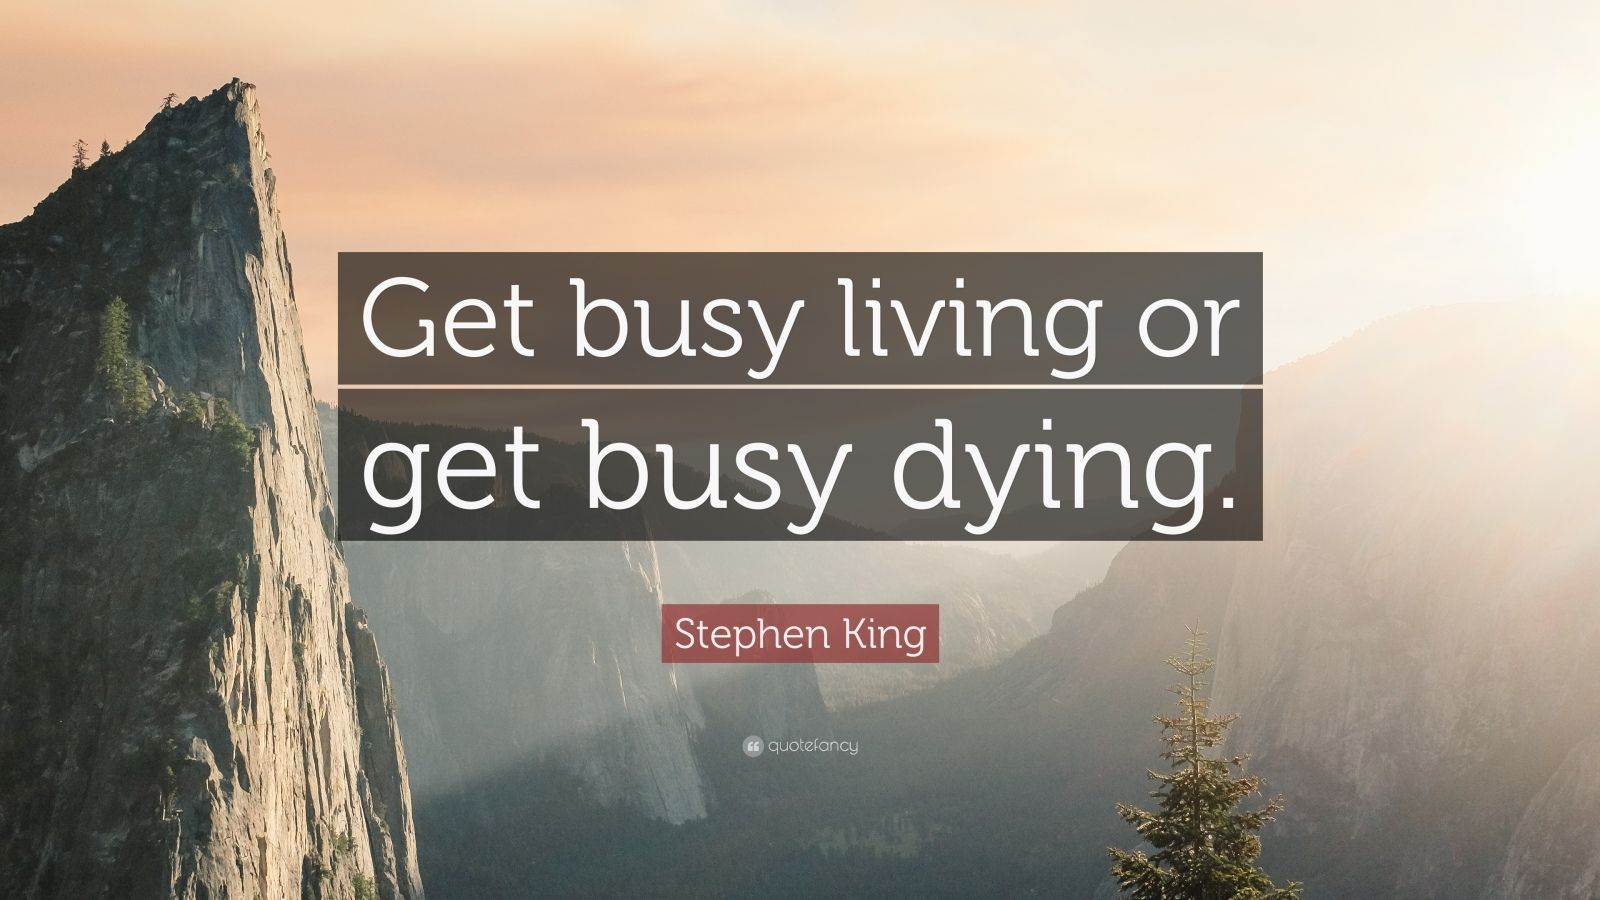 Mother Love Wallpapers With Quotes Stephen King Quote Get Busy Living Or Get Busy Dying